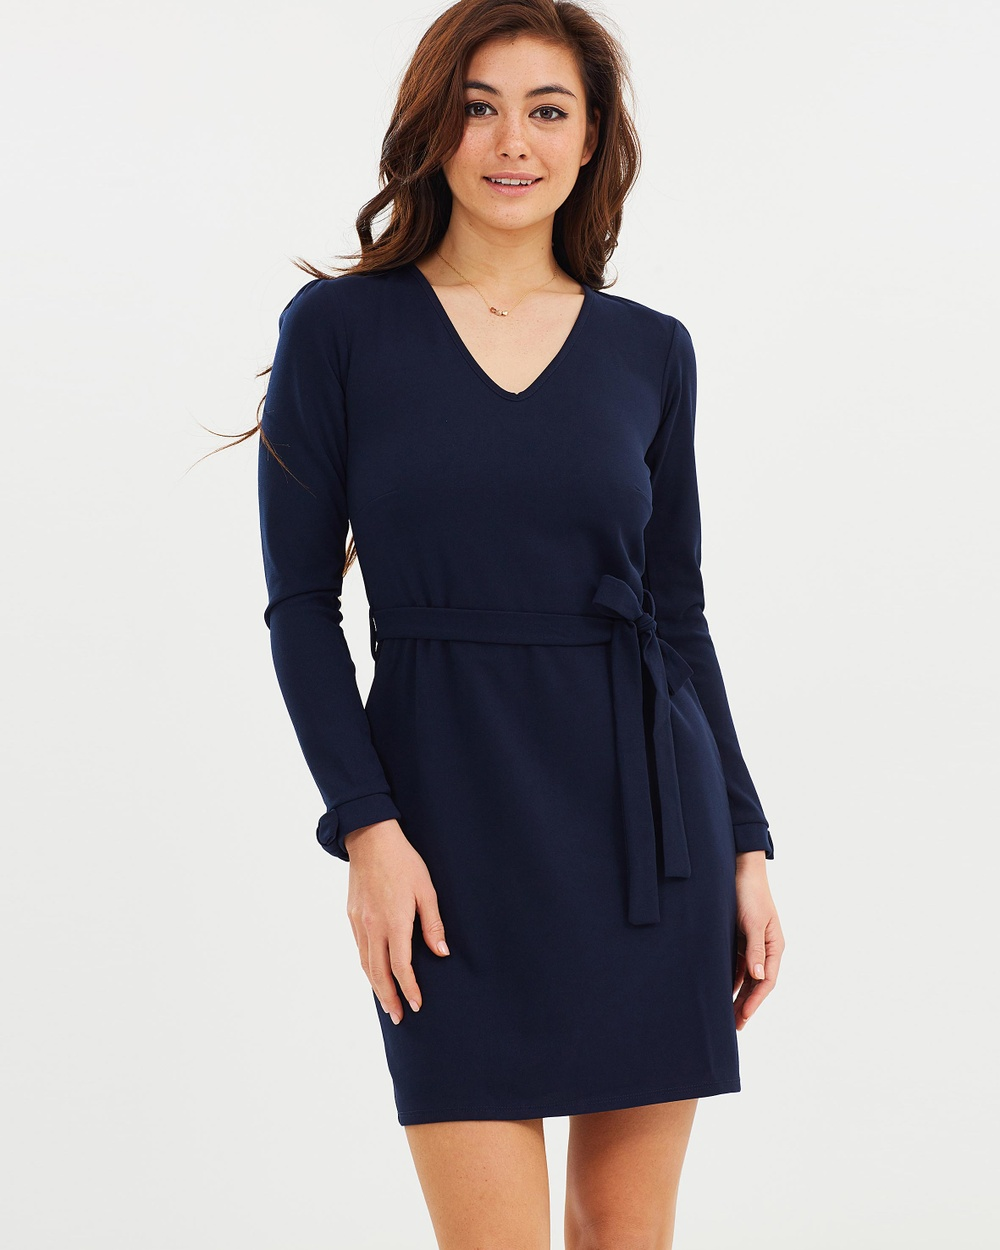 Dorothy Perkins Long Sleeve Tie Belted Dress Dresses Navy Blue Long Sleeve Tie Belted Dress